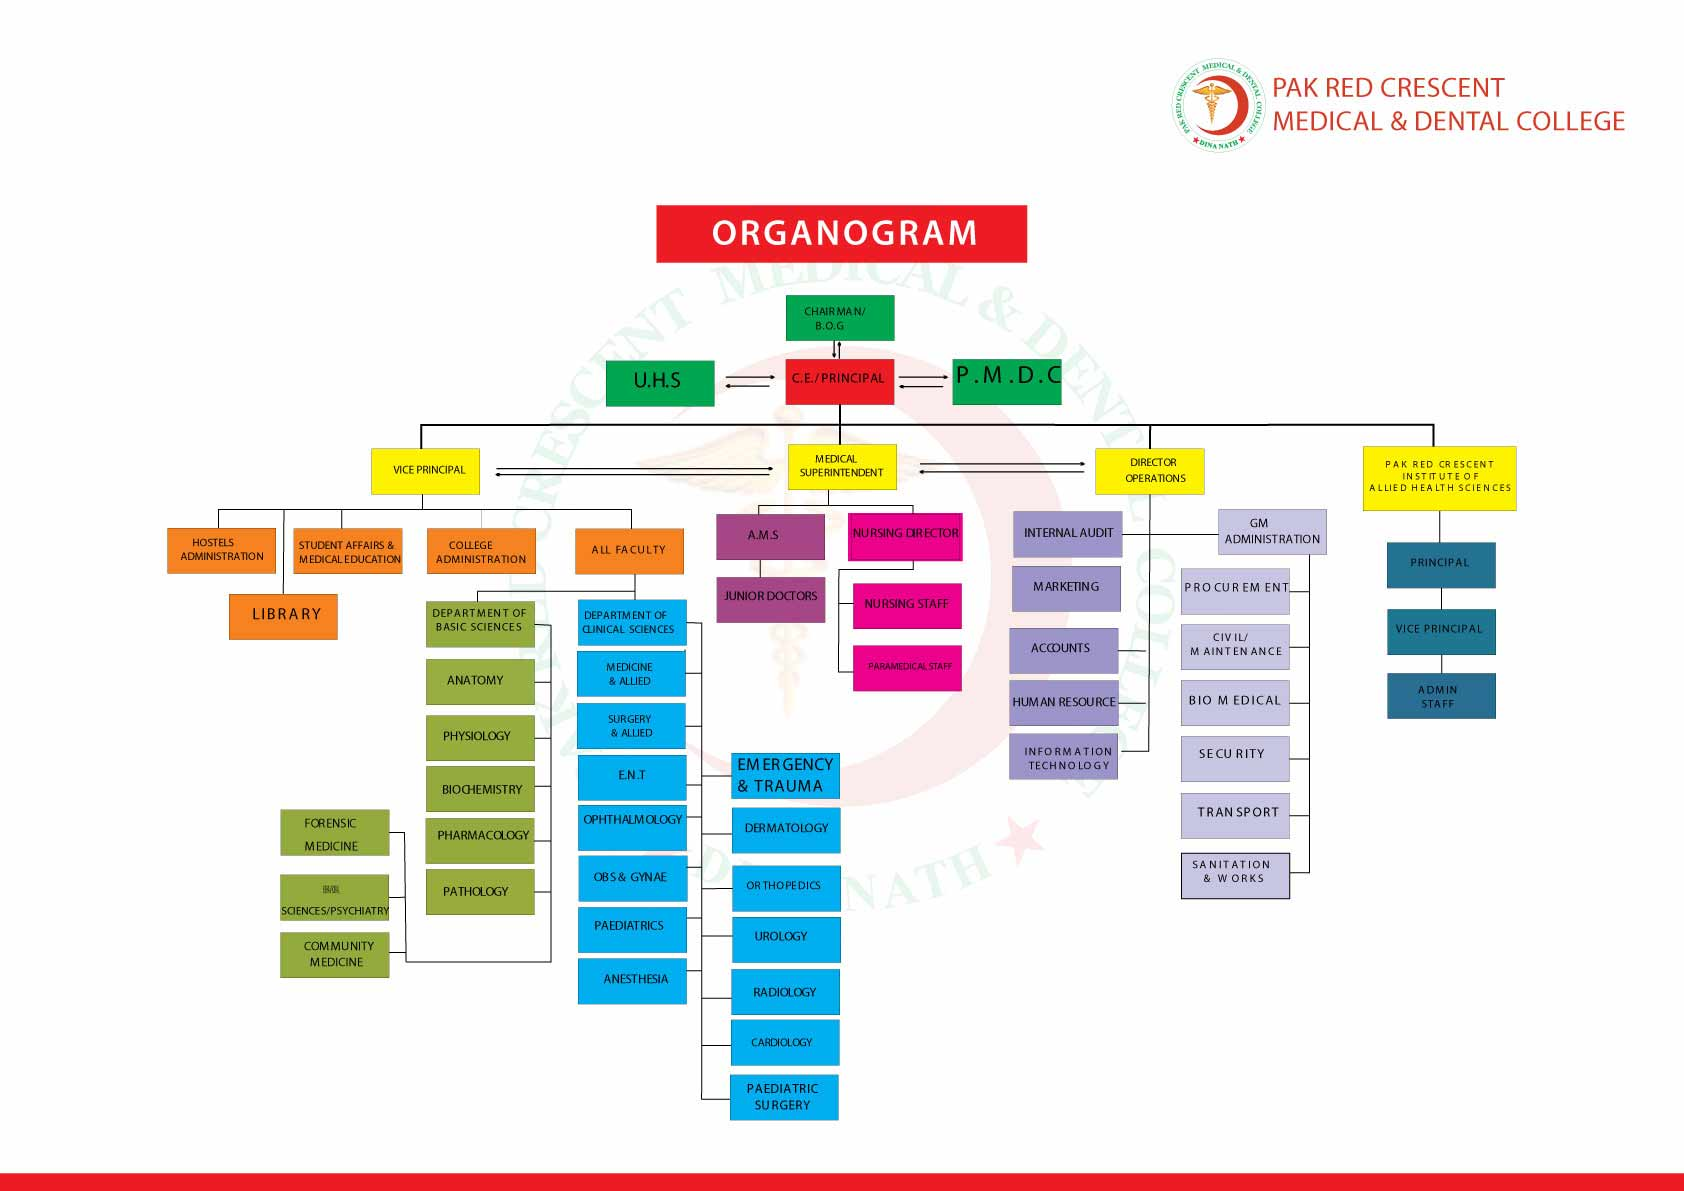 Pak Red Crescent Medical and Dental College - Organizational Structure